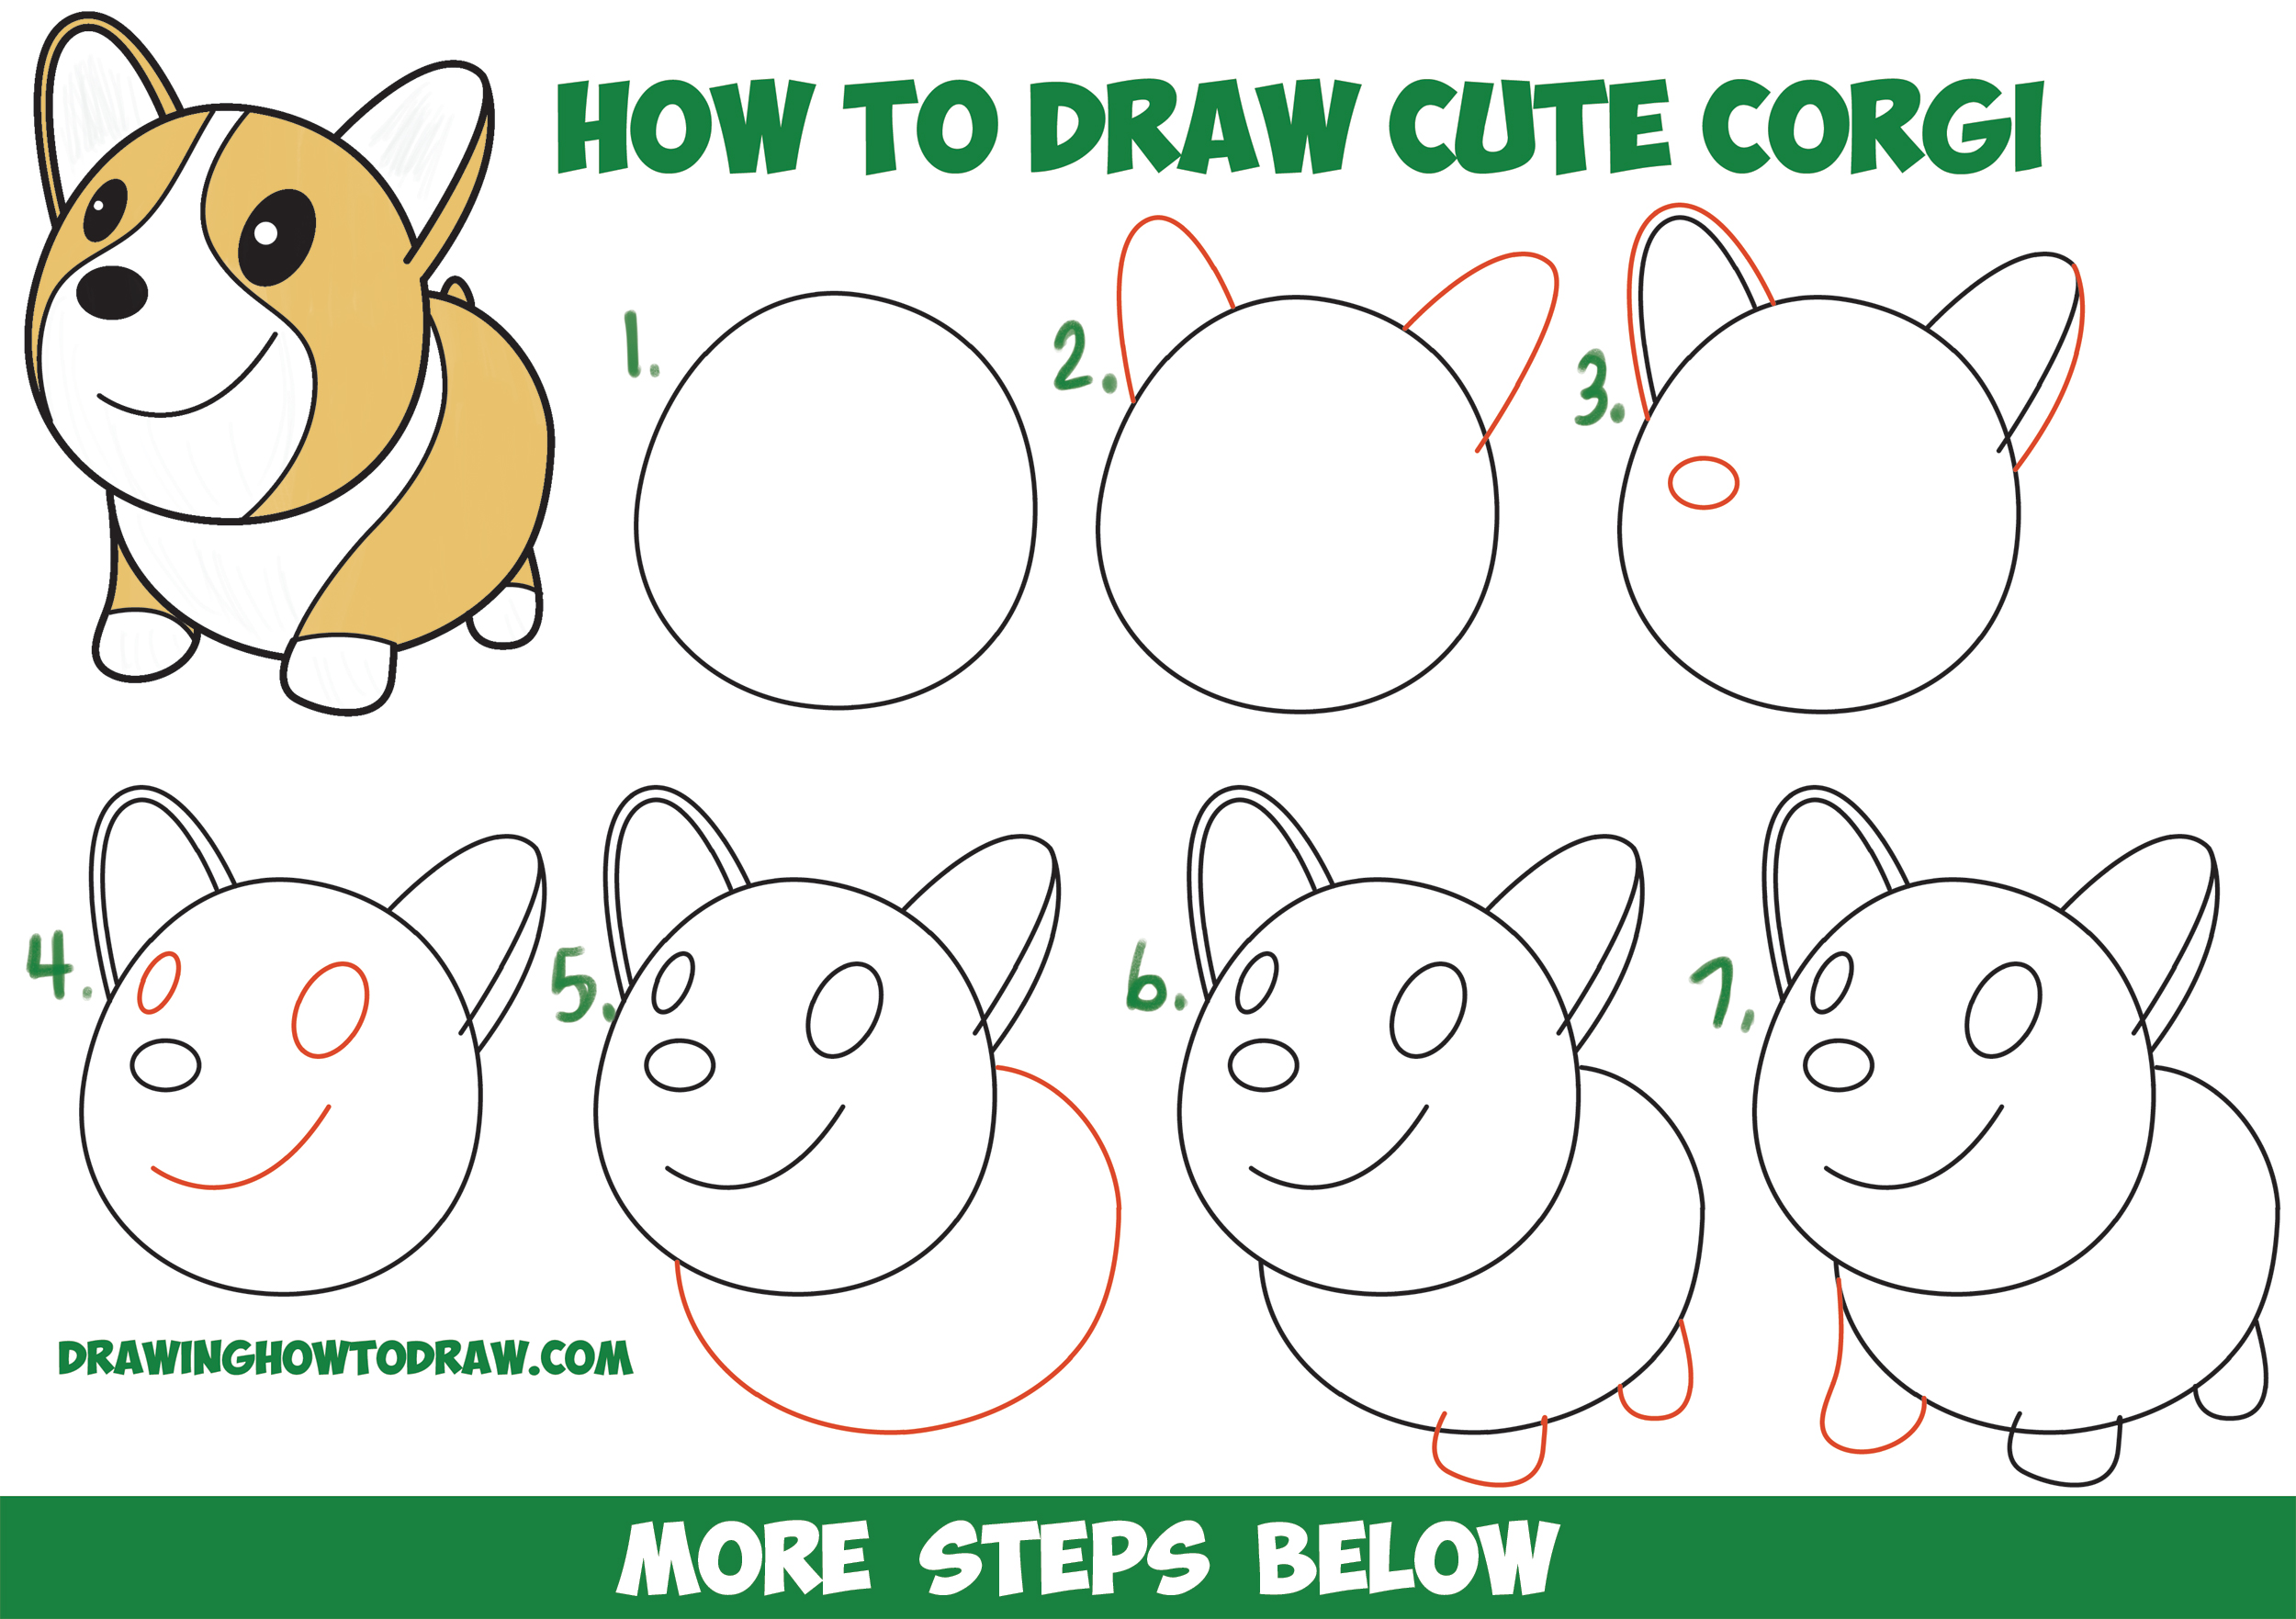 Uncategorized Simple Drawing For Kids Step By Step how to draw a cute corgi cartoon kawaii chibi easy step by by